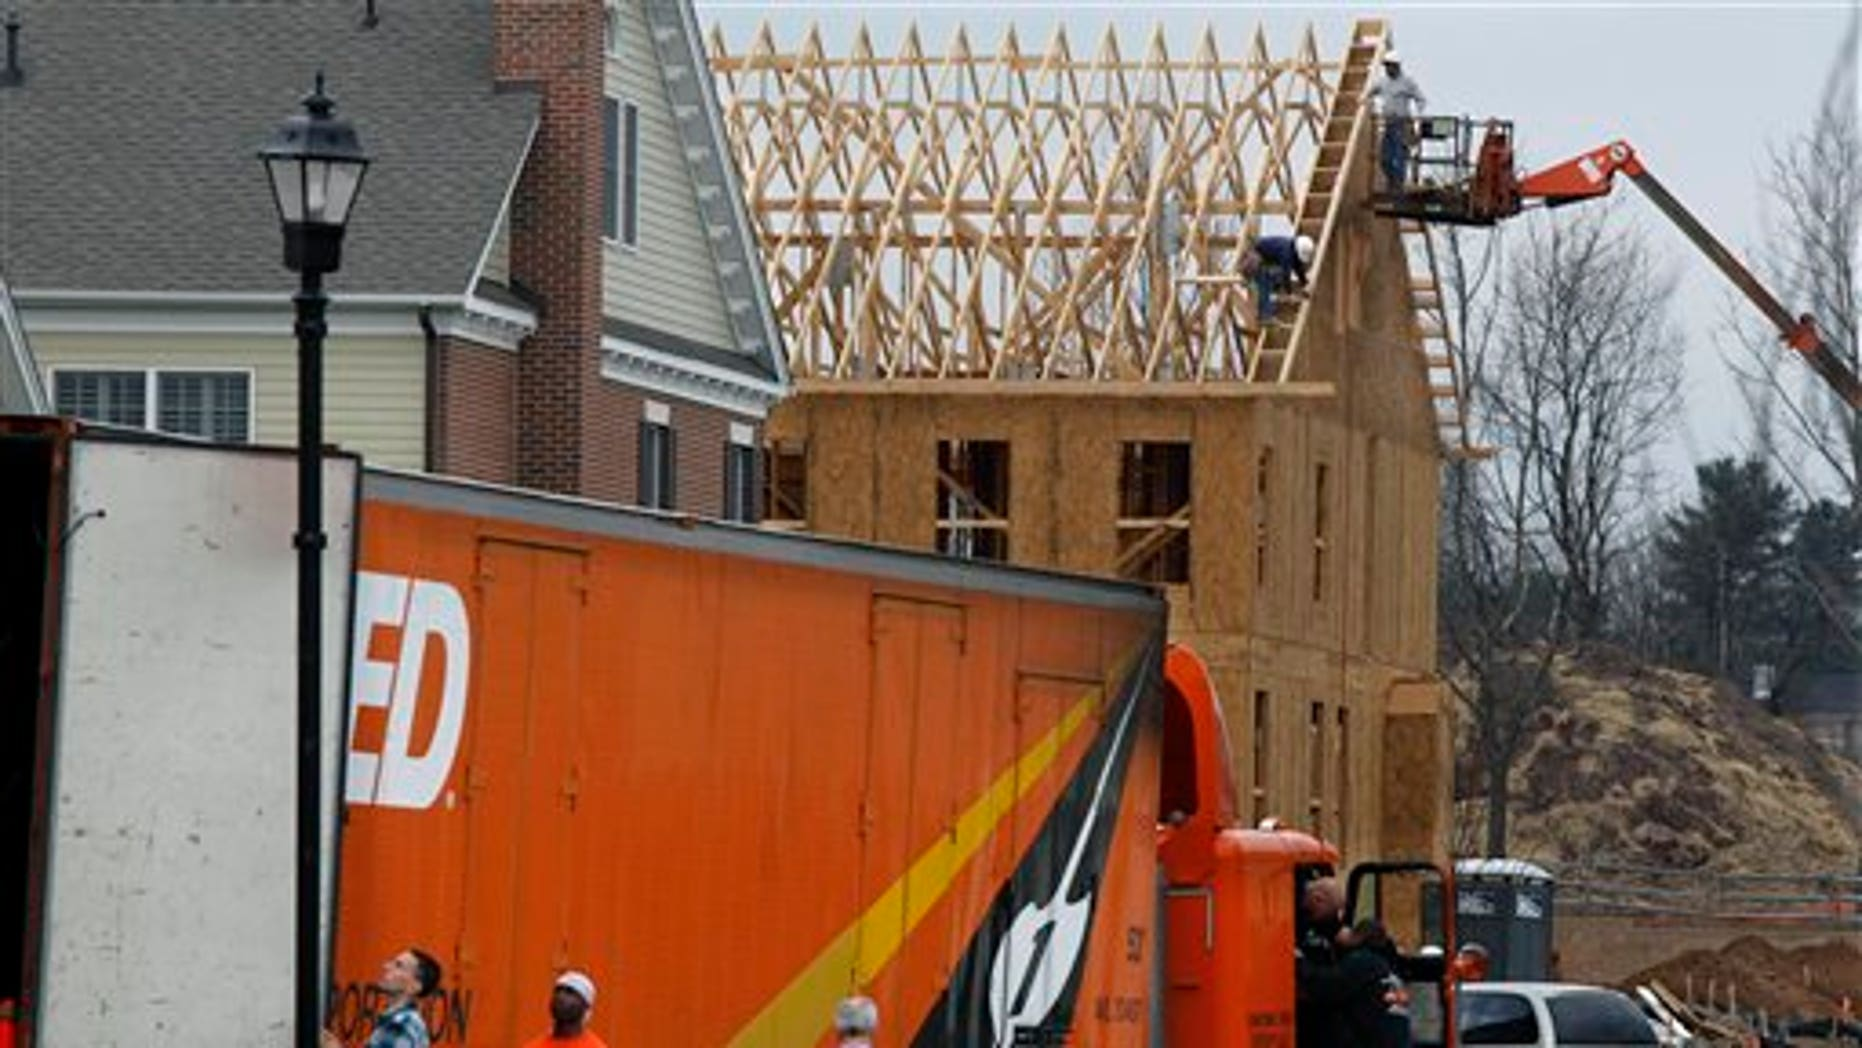 April 7: Construction continues on a new home in Newtown, Pa., as a moving van delivers furniture at a nearby finished home.